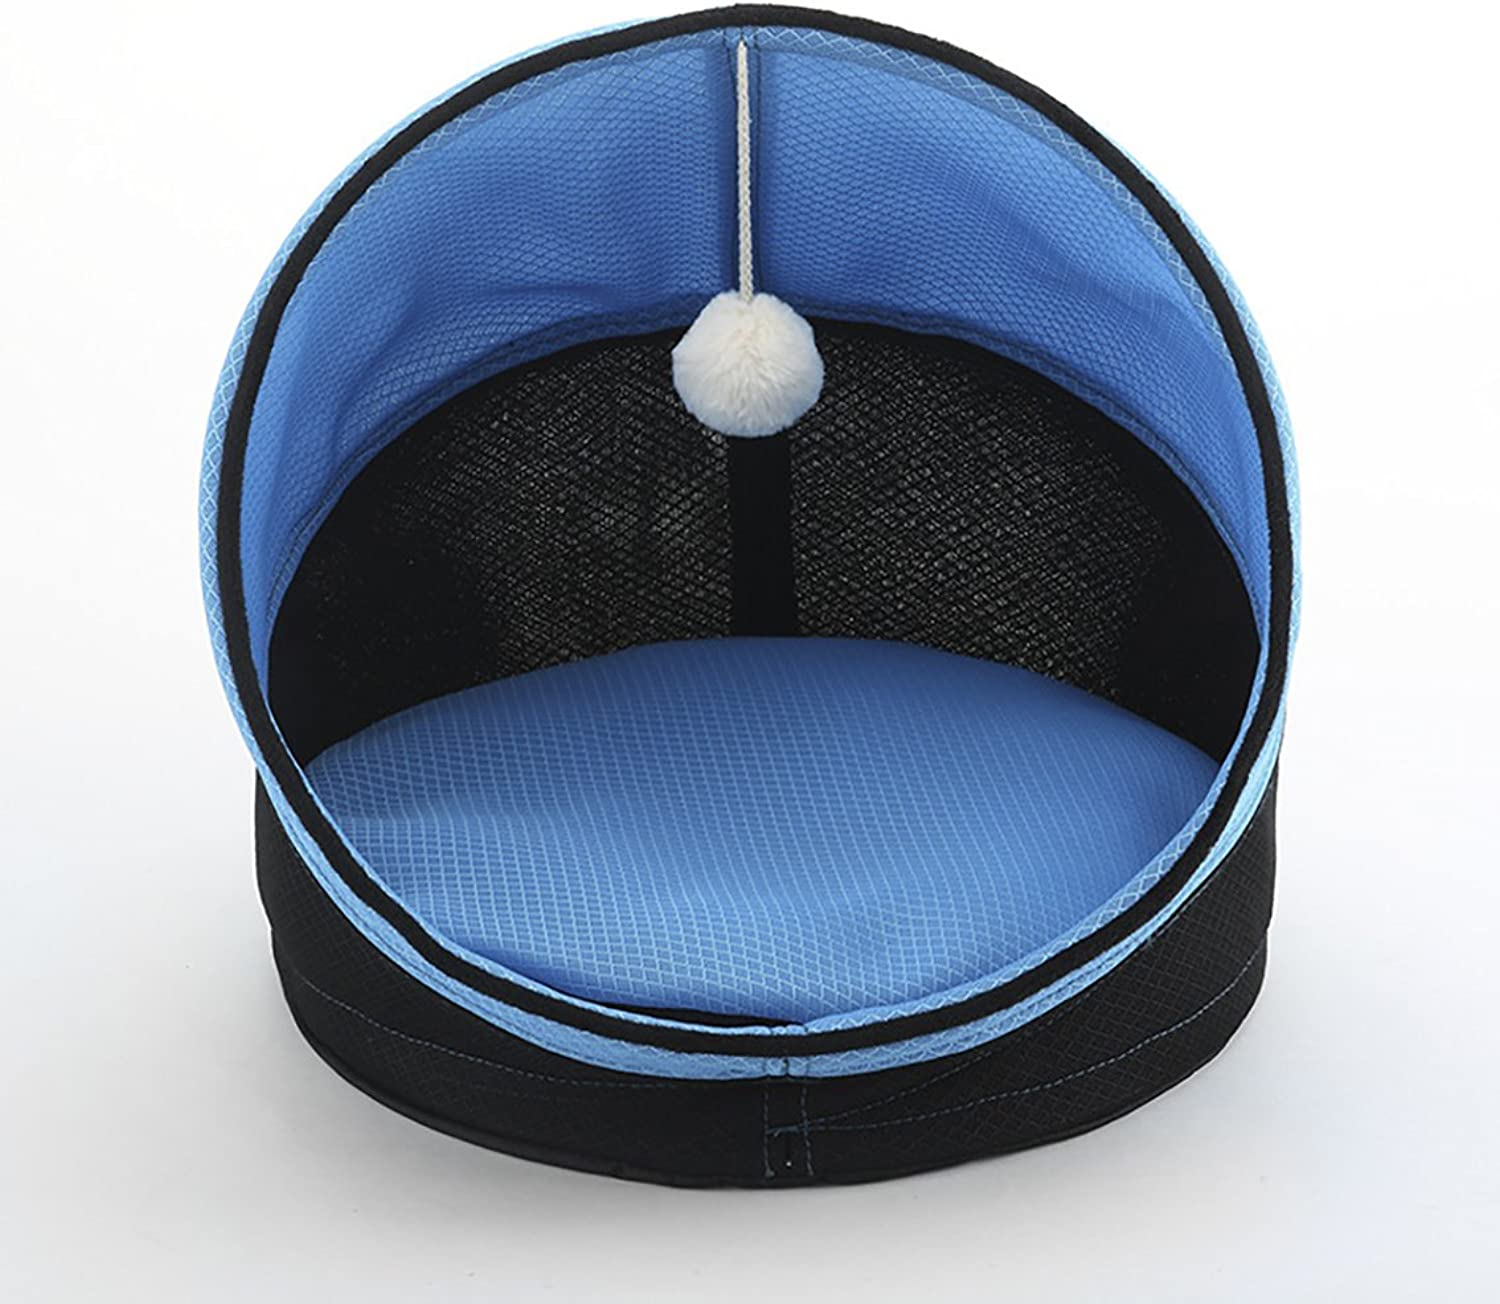 Keedo Pet Cat Bed Portable Foldable Small Dog House Breathable Pet Nest